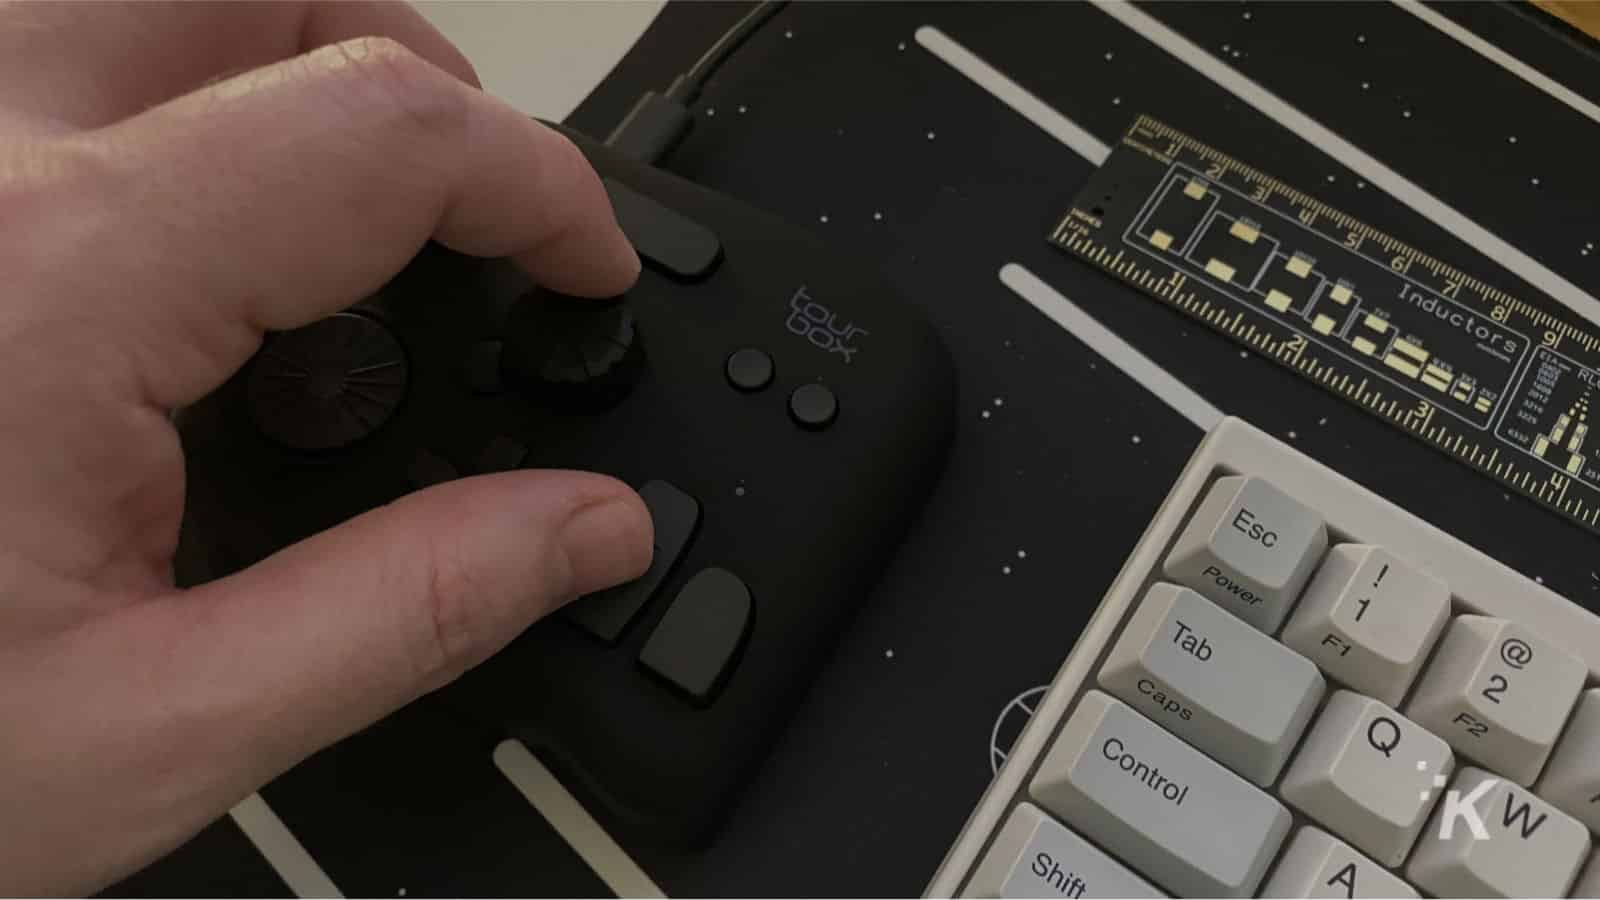 editing controller with hand using the knob